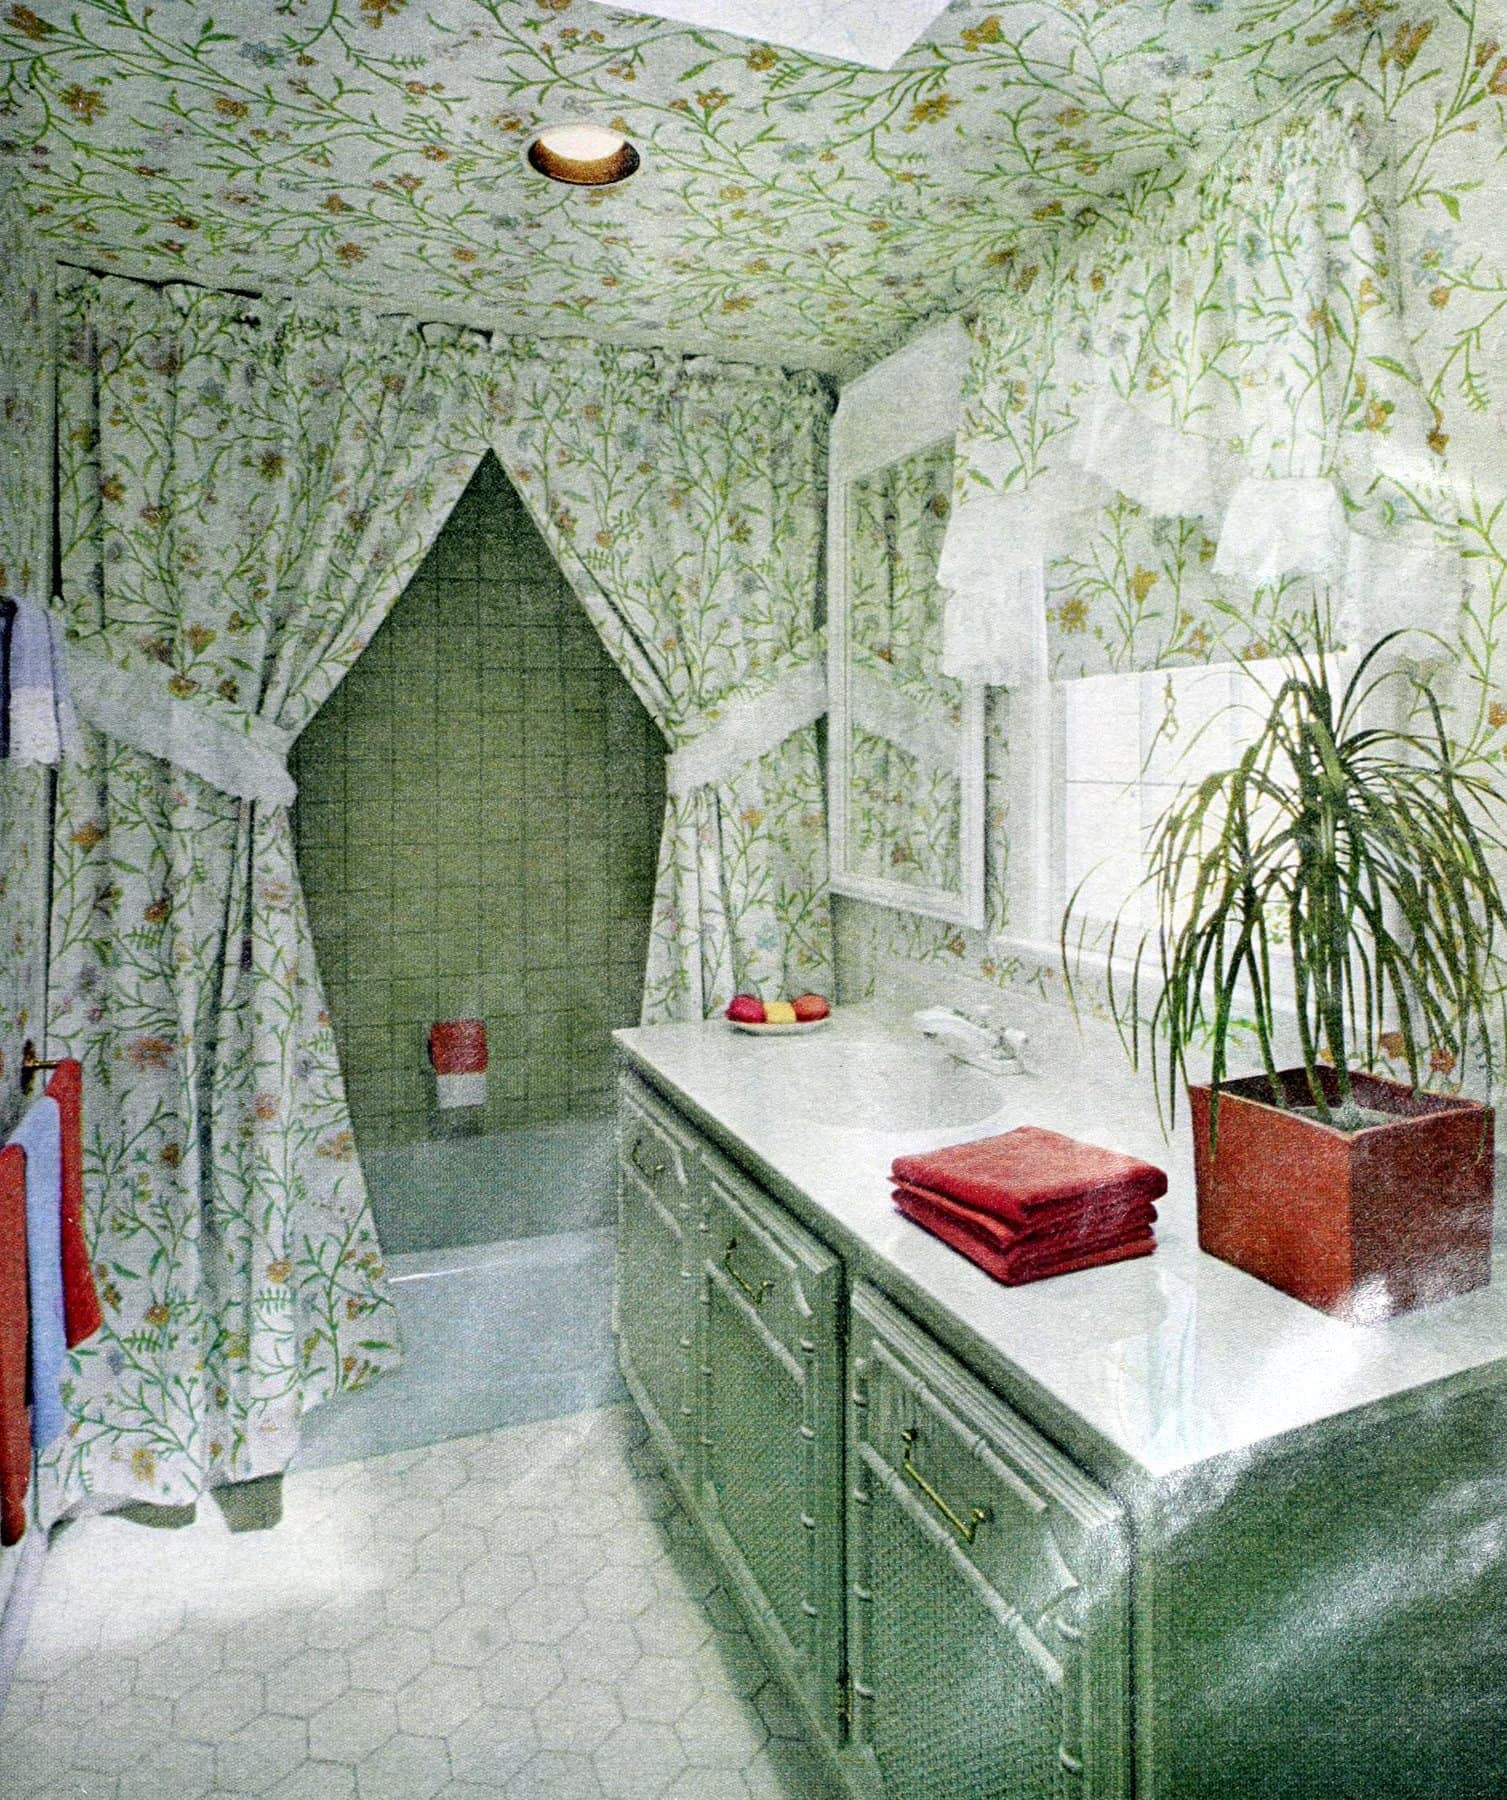 Farmhouse green bathroom decor (1980)